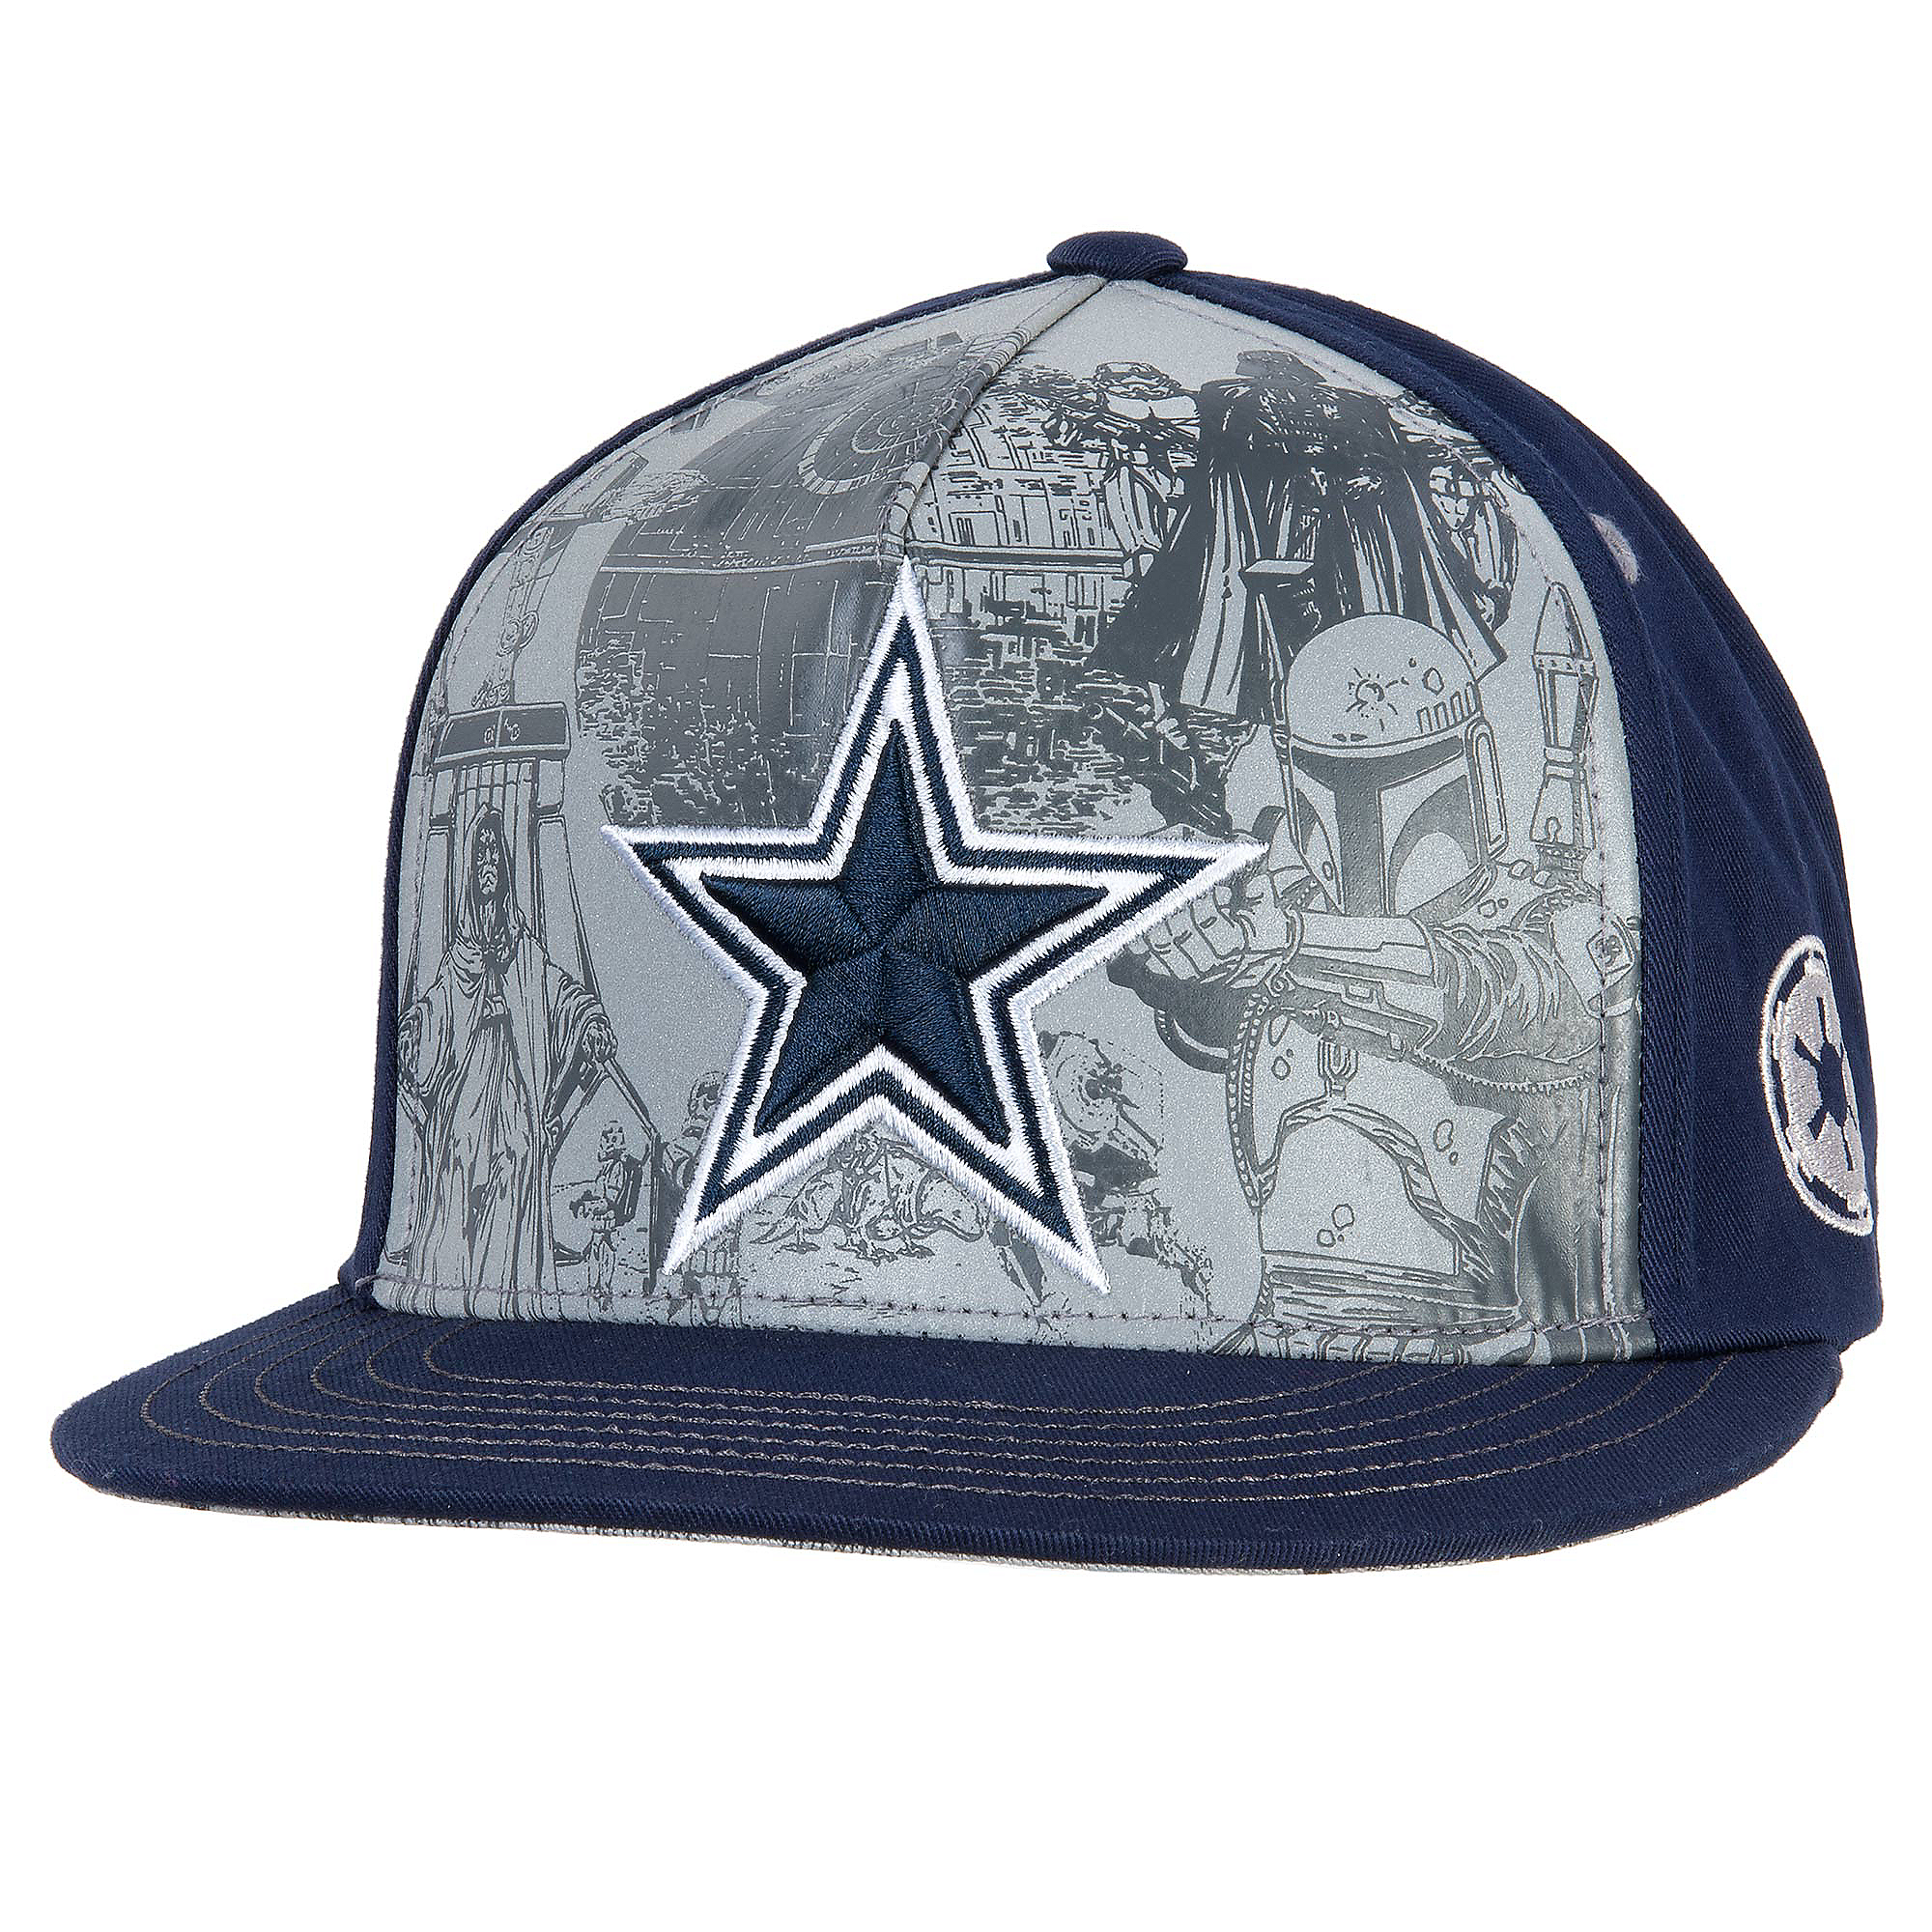 75b0c0564b4 Dallas Cowboys Star Wars Imperial Cap